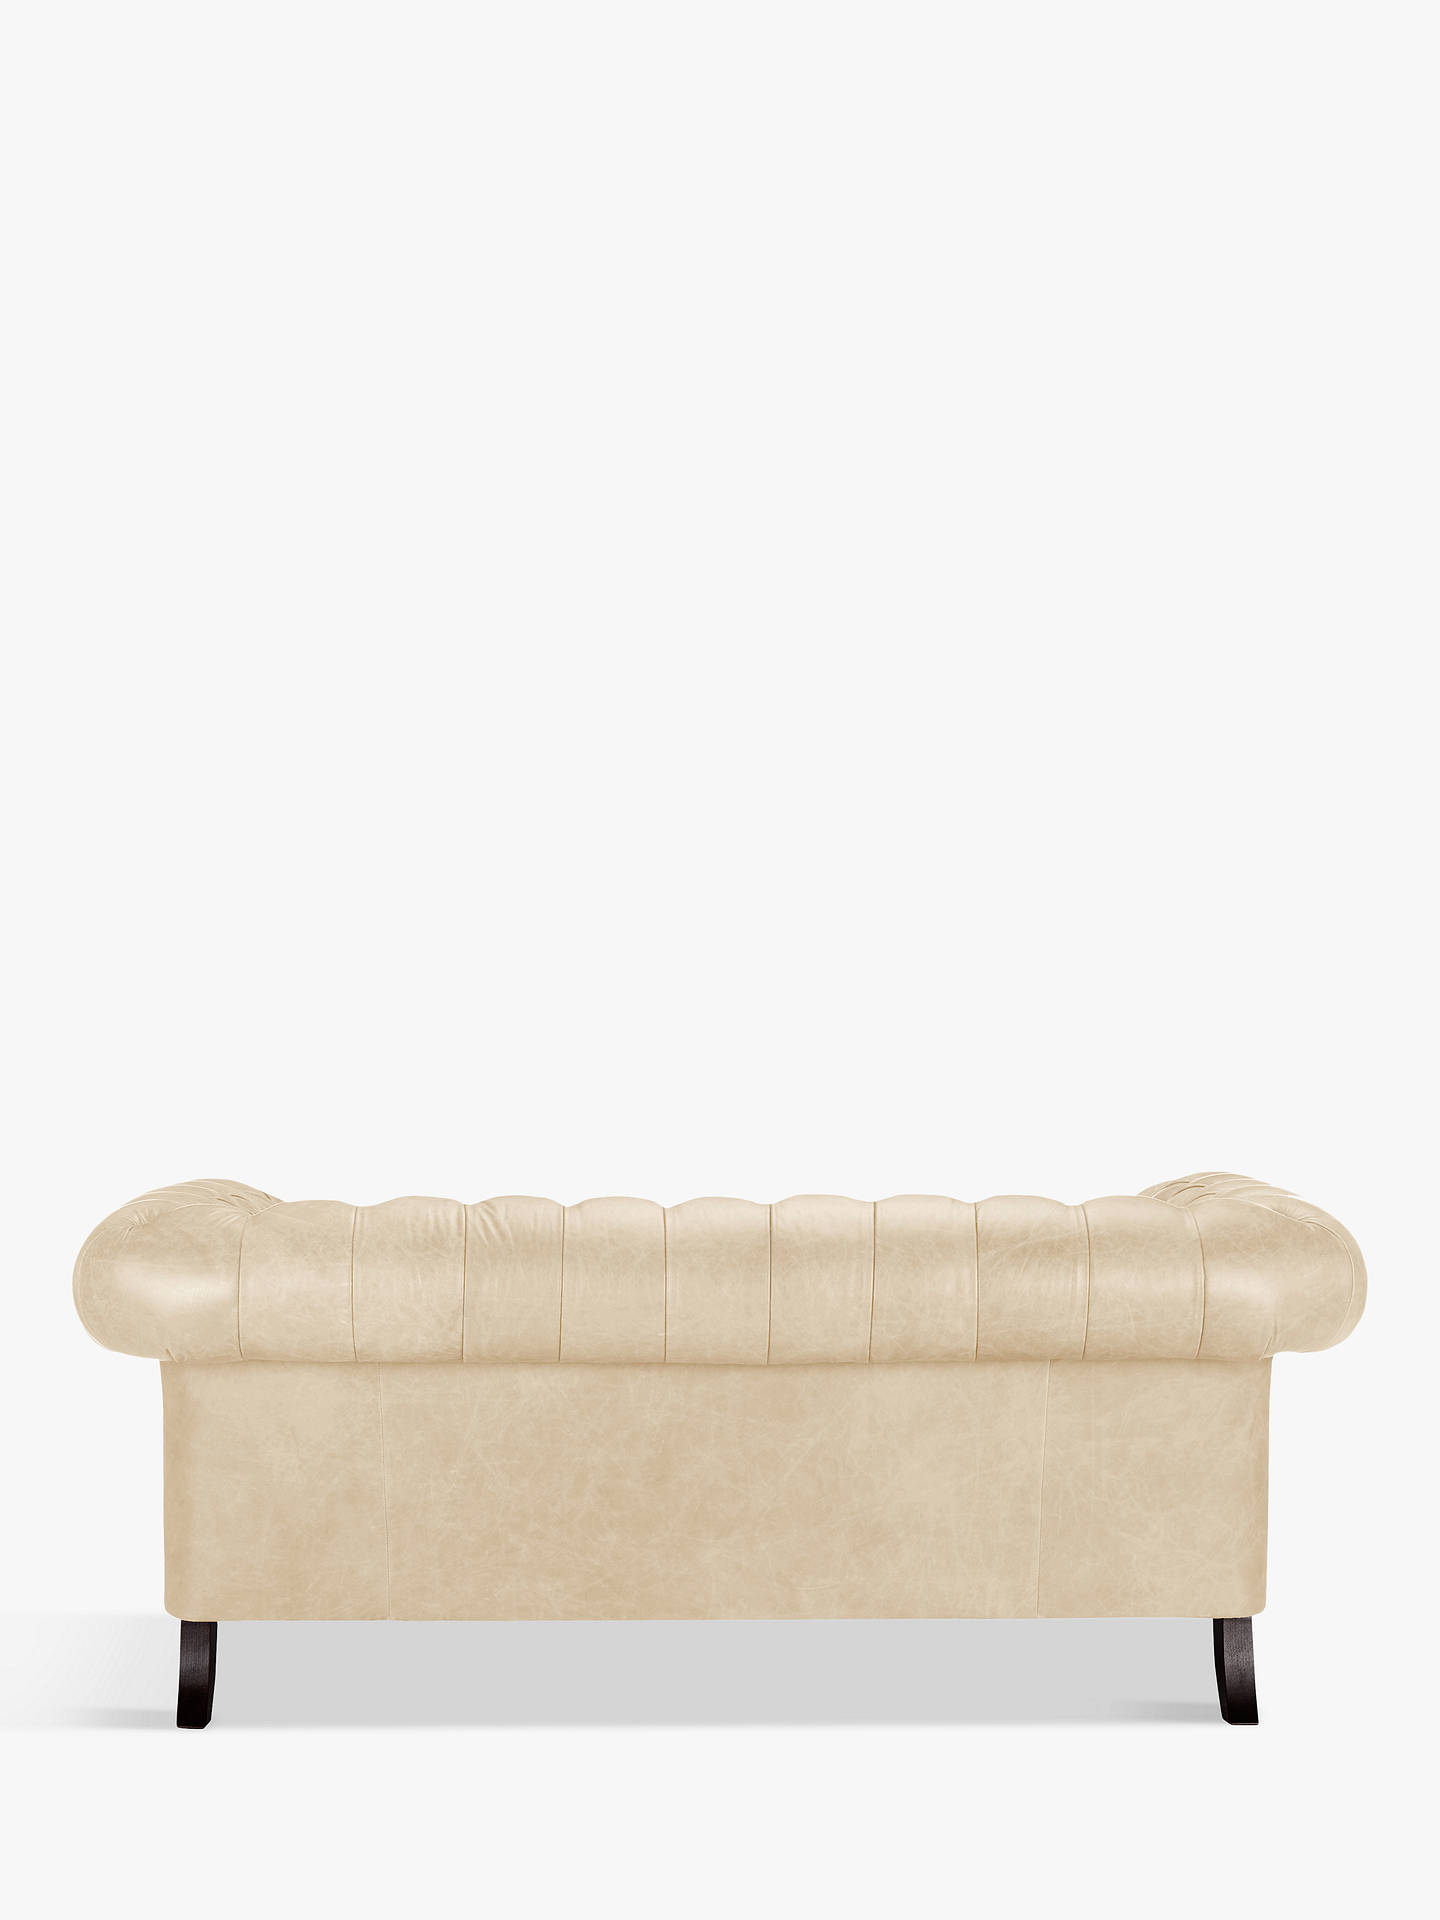 Buy John Lewis & Partners Cromwell Chesterfield Leather Large 3 Seater Sofa, Dark Leg, Contempo Ivory Online at johnlewis.com